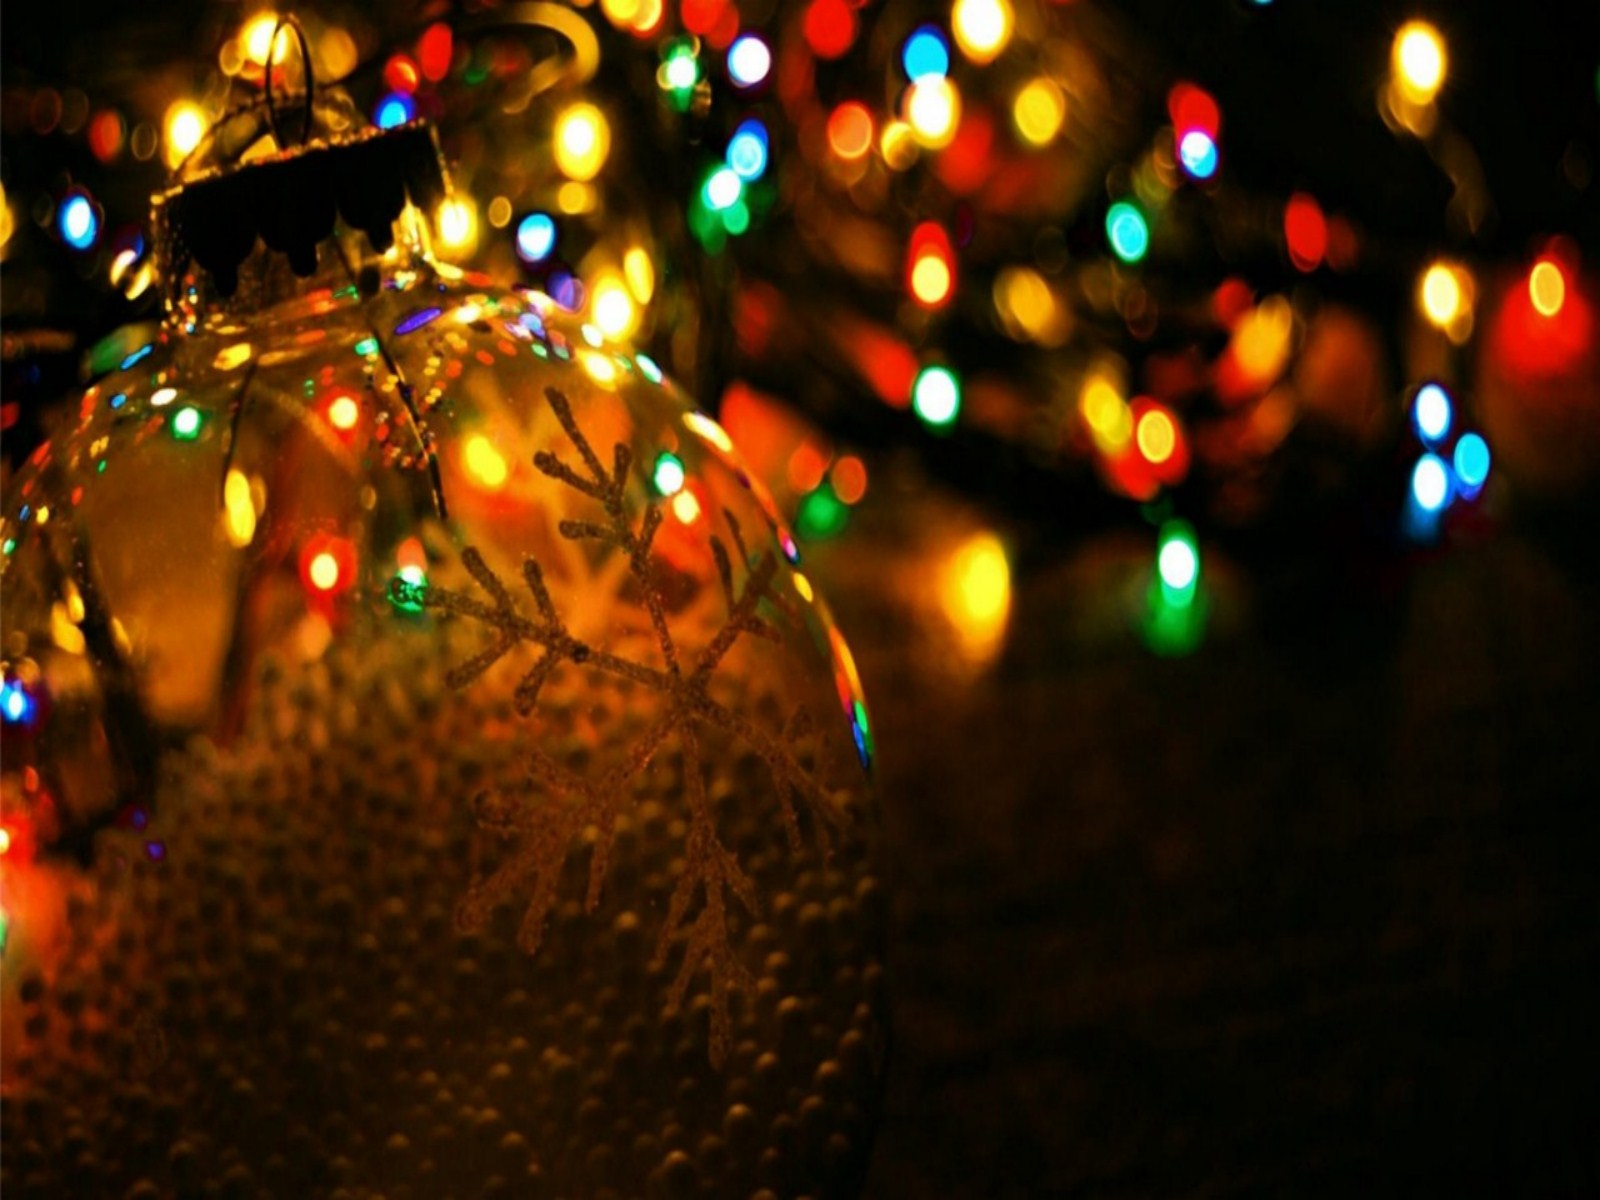 Christmas Lights Tumblr Background nononeonxyz 1600x1200